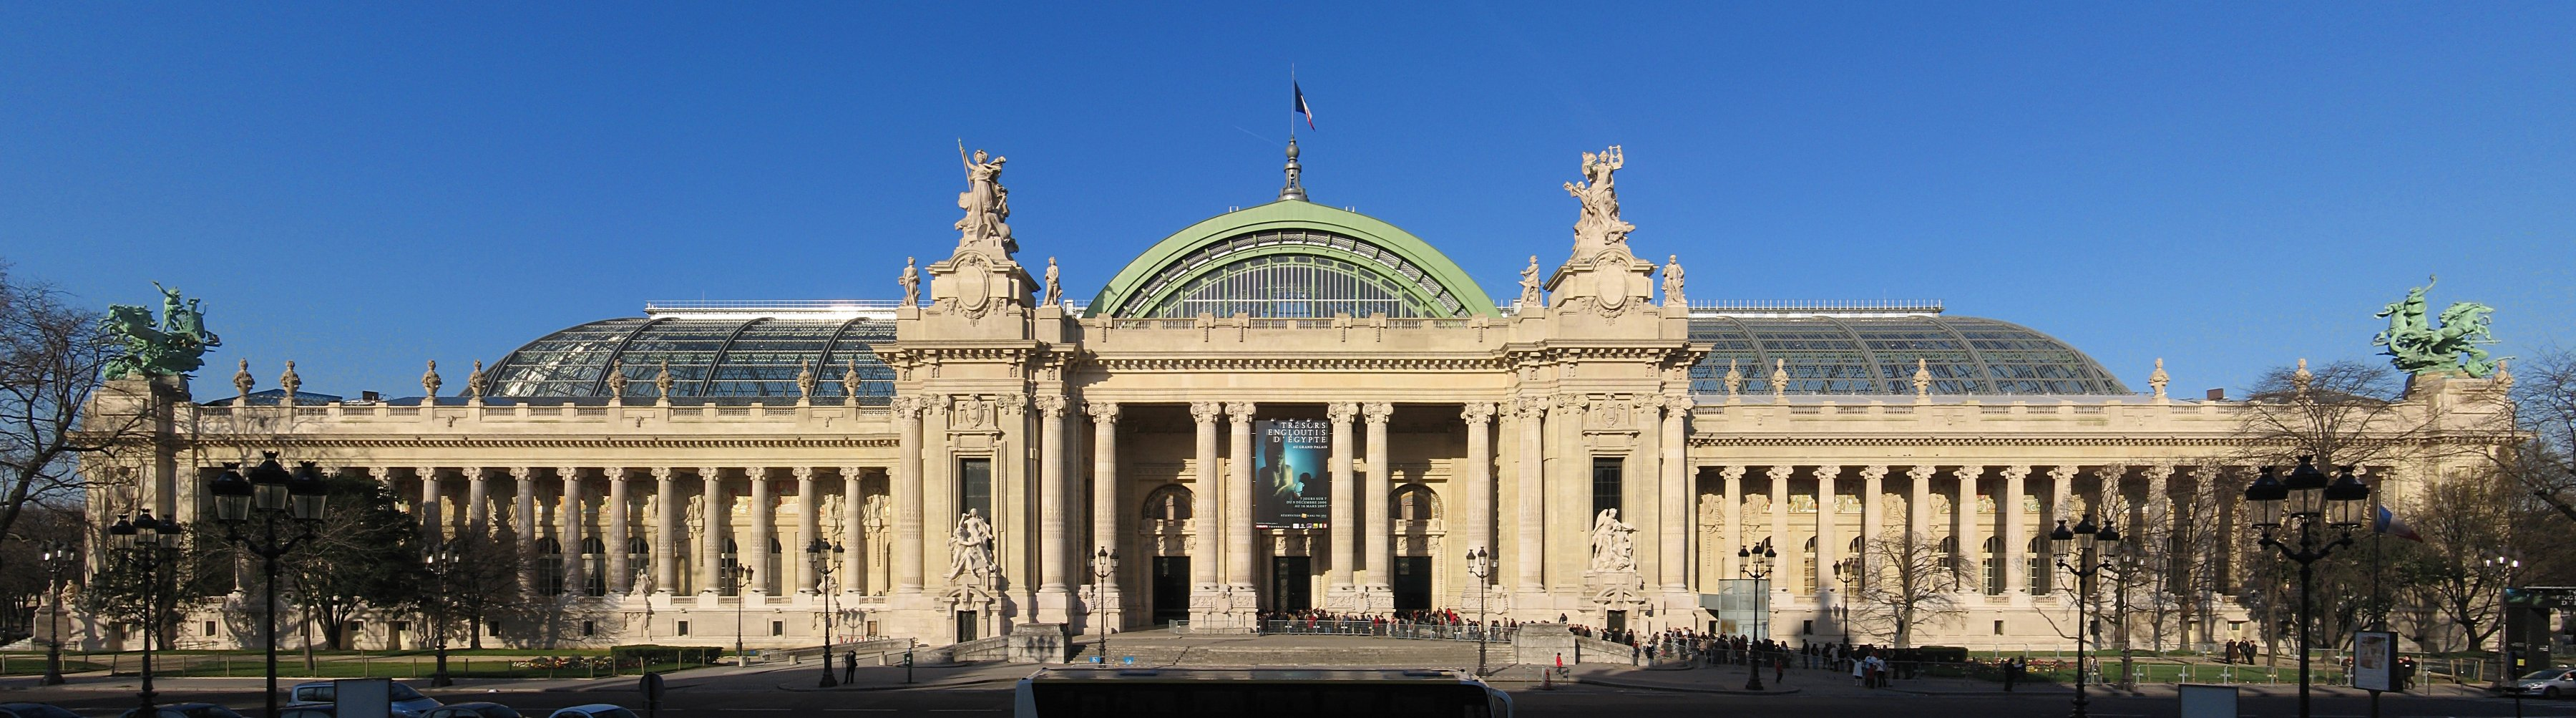 Panoramic view of the Grand Palais des Champs-Élysées, Paris, France. Photo taken on September 8, 2009.